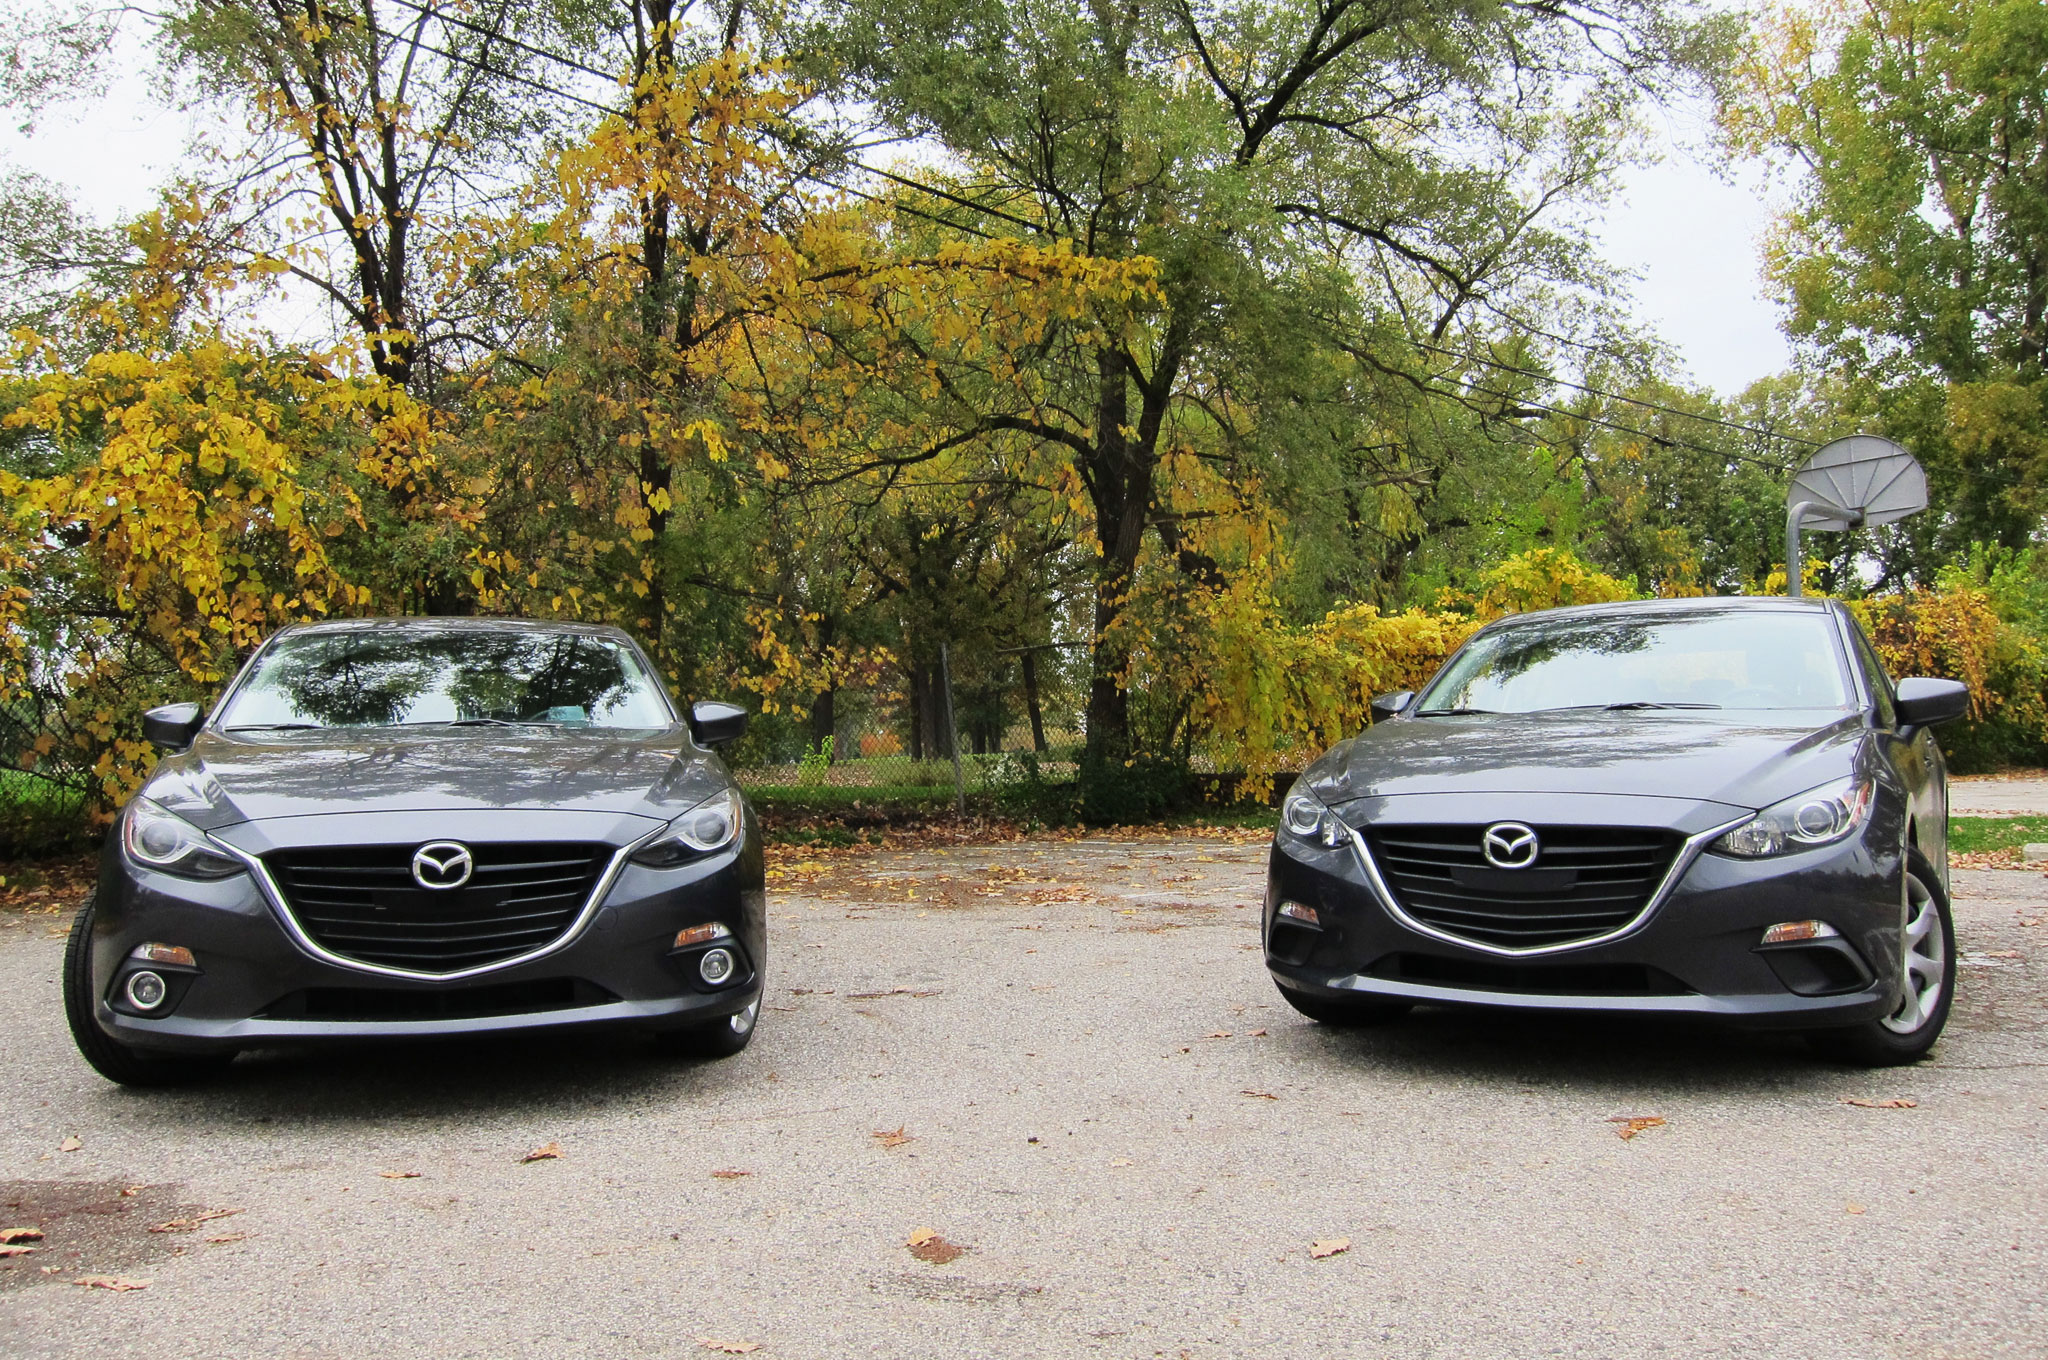 2014 mazda 3 s touring getting noticed. Black Bedroom Furniture Sets. Home Design Ideas